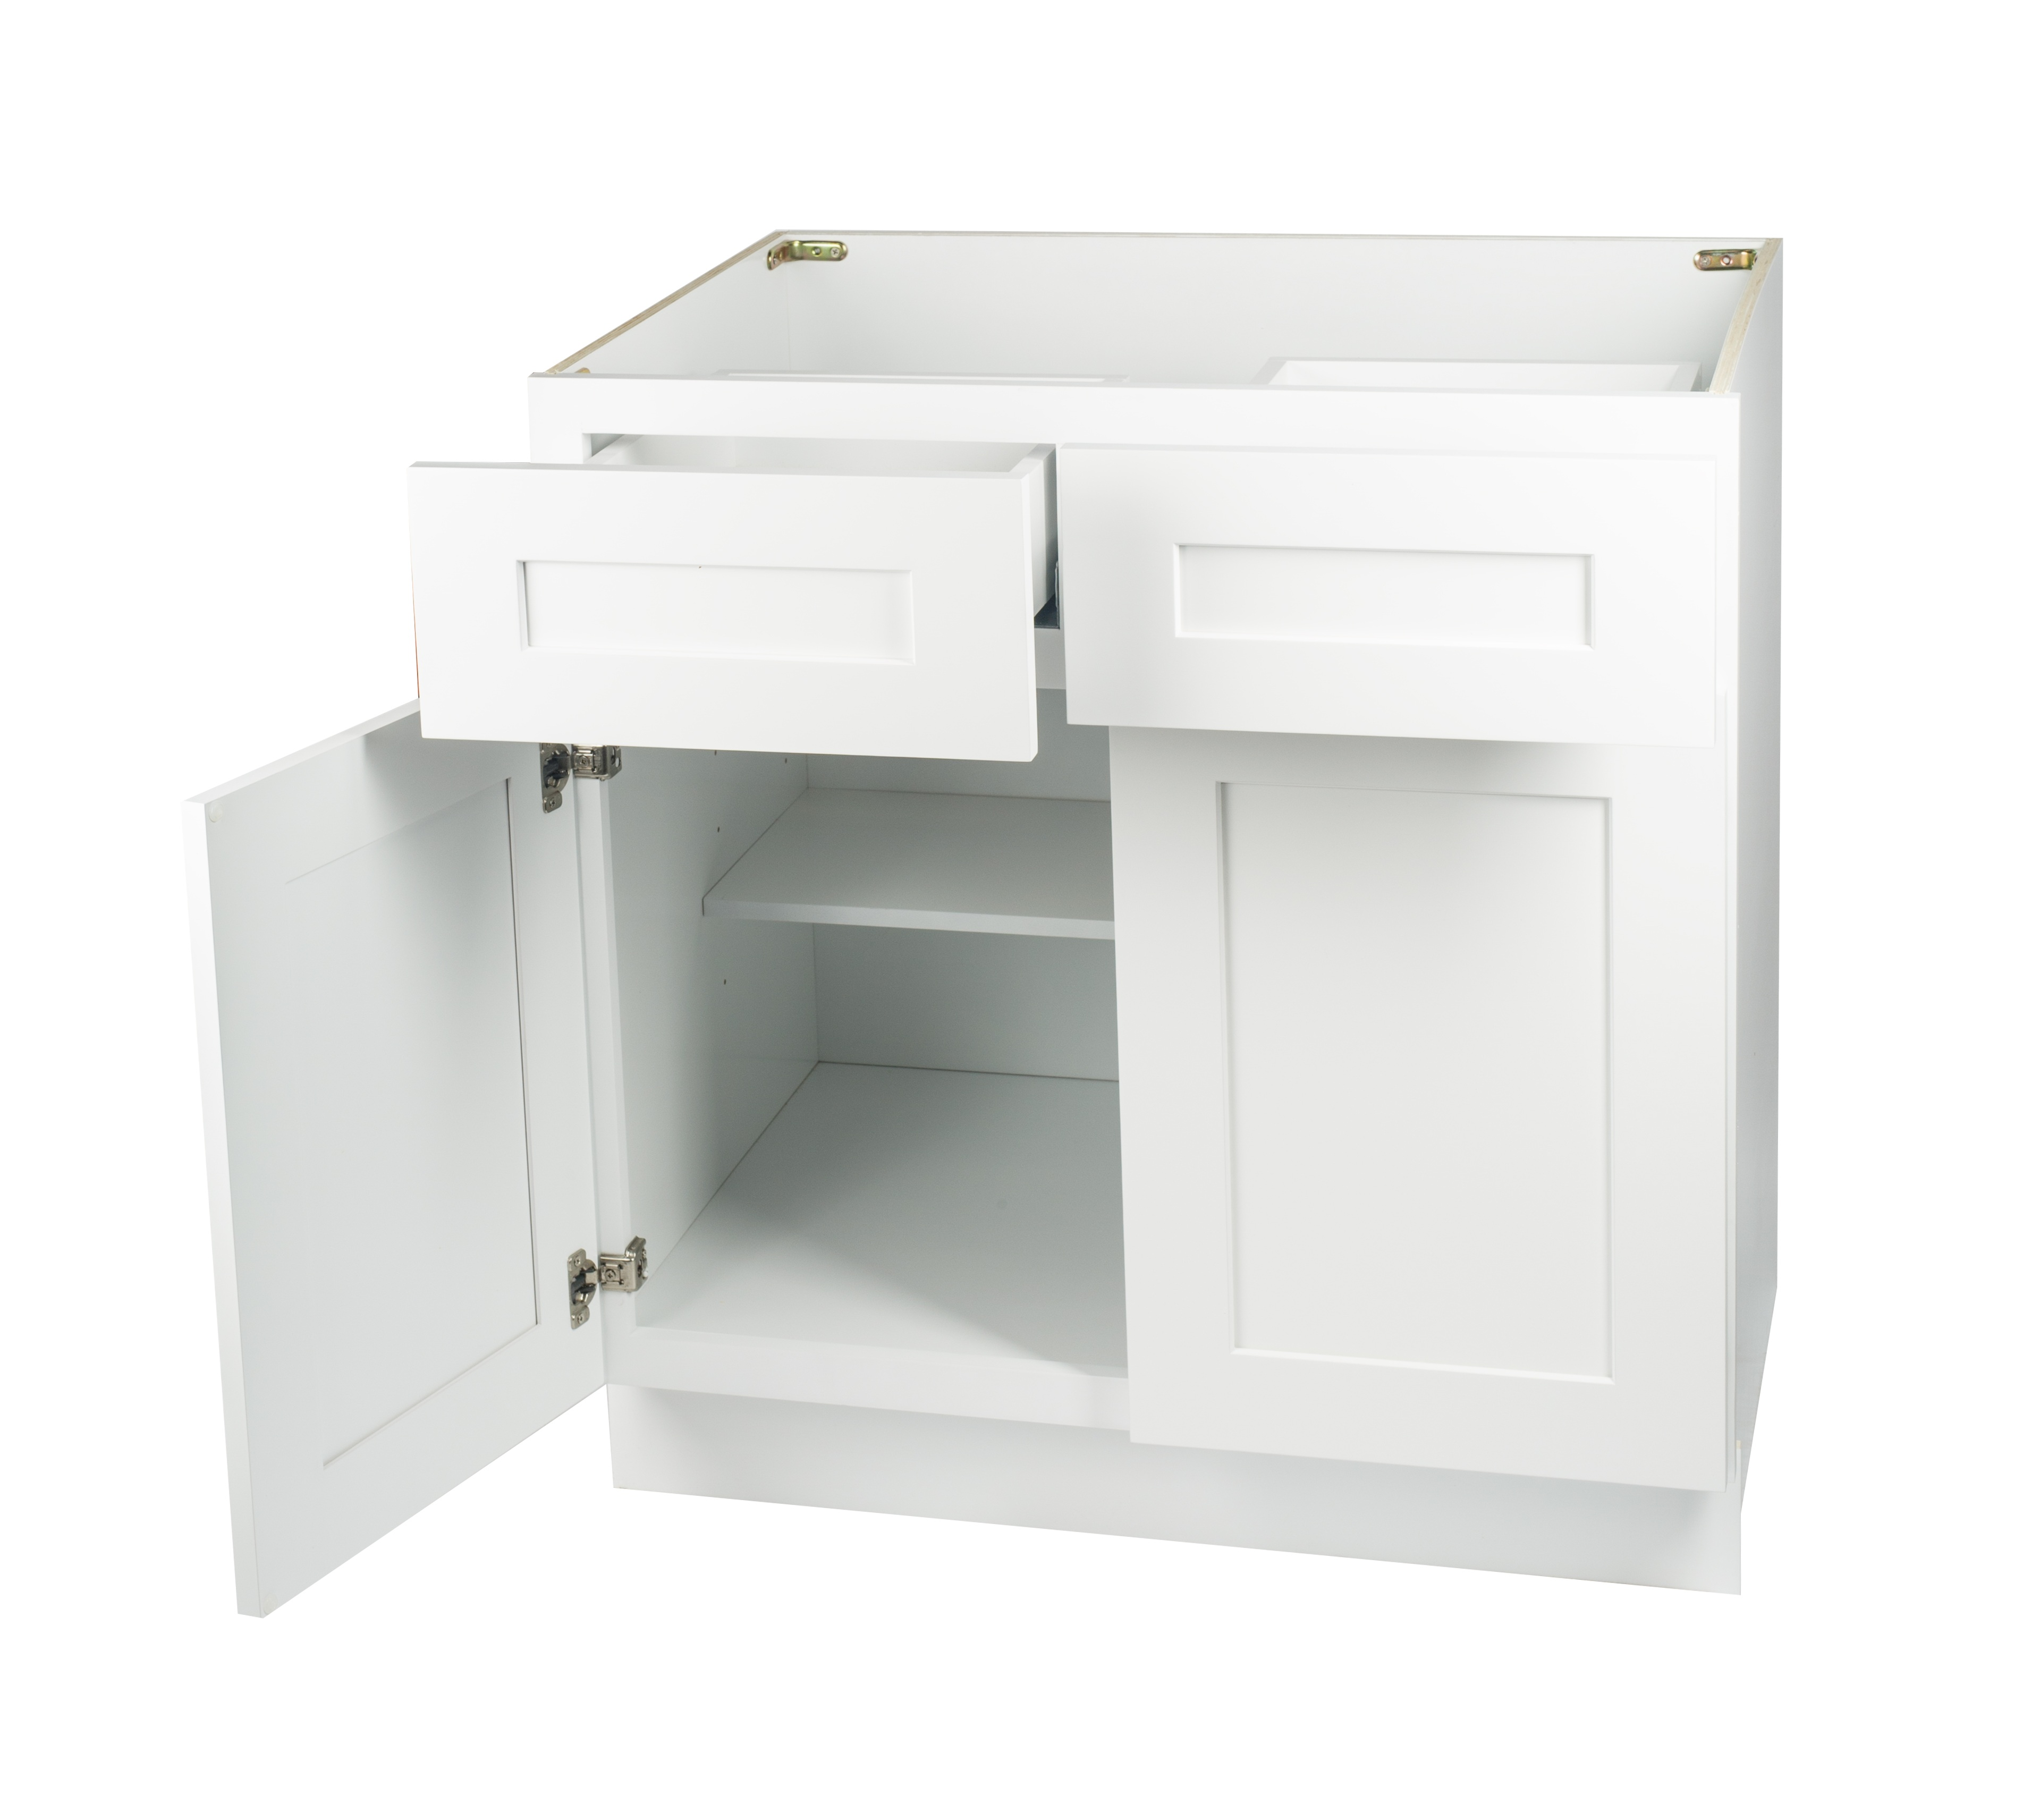 Ready to Assemble 42Wx34.5Hx24D in. Shaker Base Cabinet with 2 Door and 2 Drawer in White